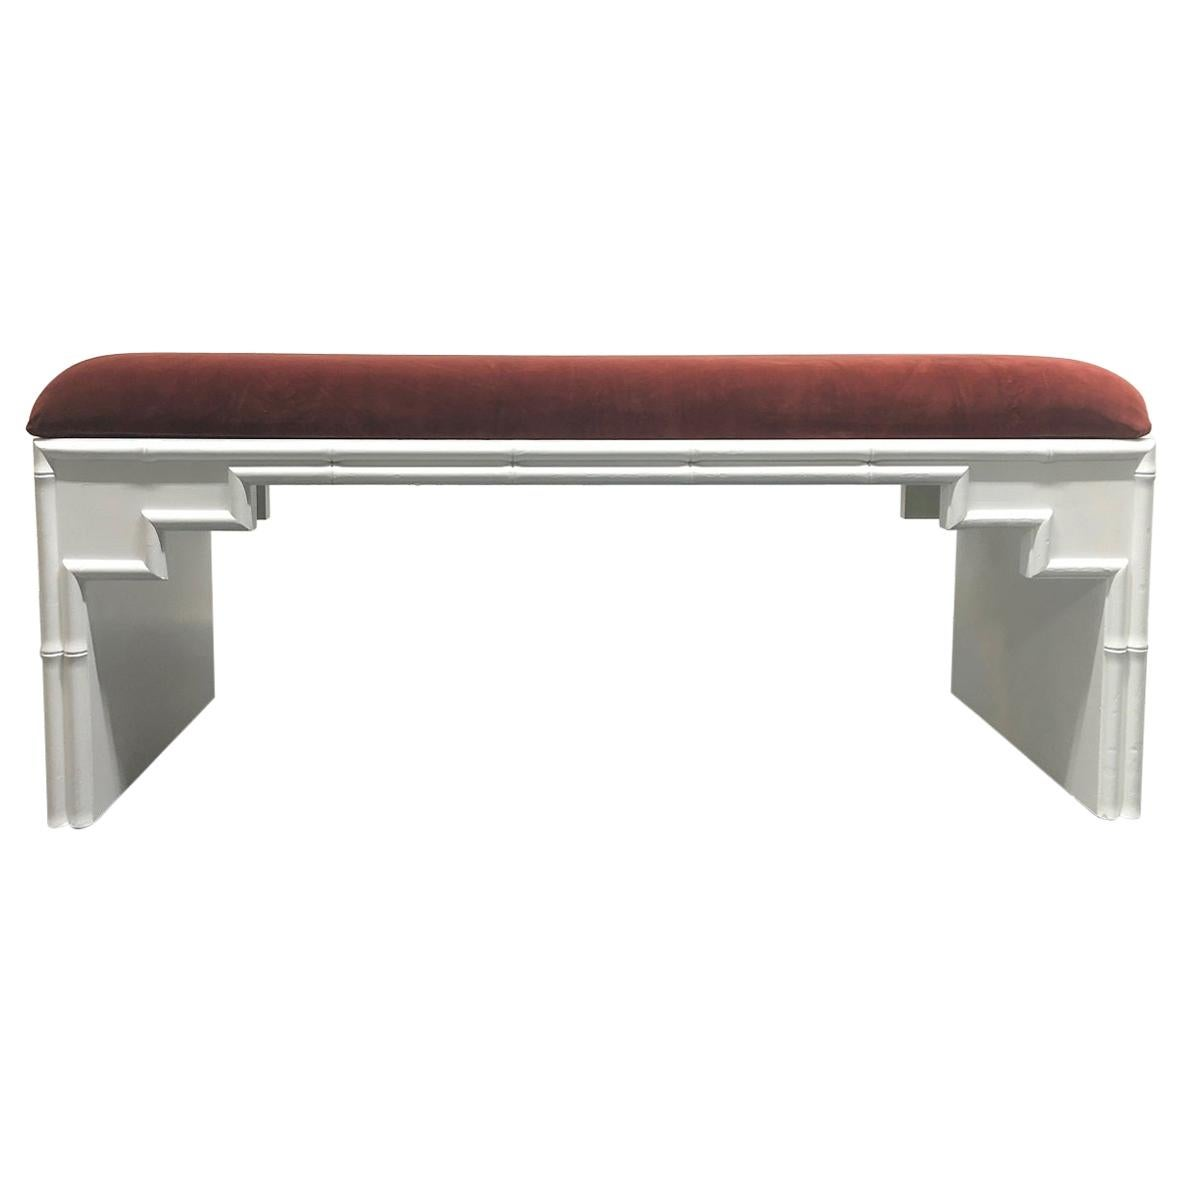 Hollywood Regency Faux Bamboo Upholstered Bench